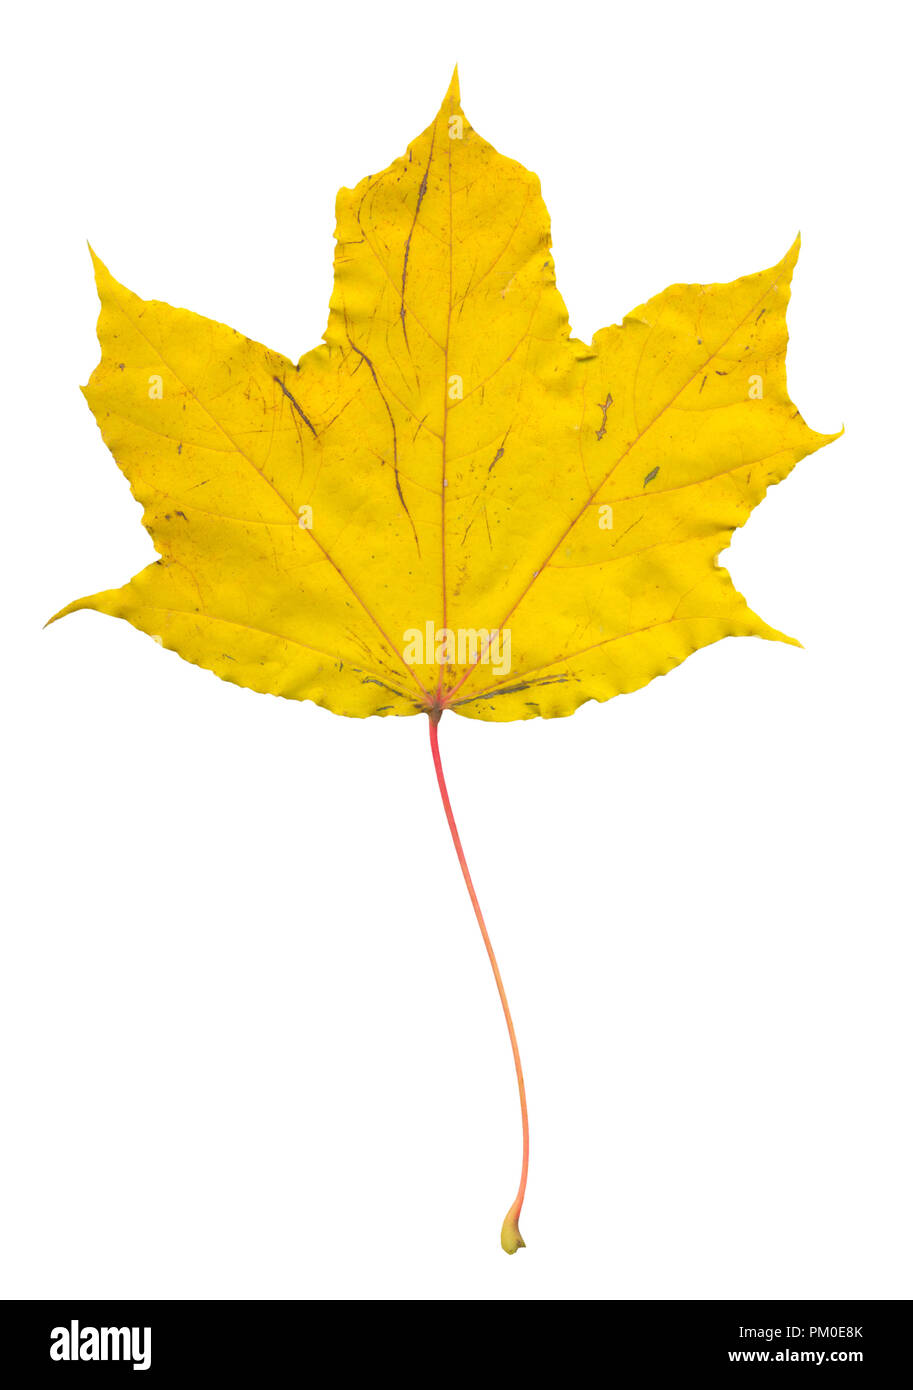 Colorful dry fallen maple tree leaf. Warm colors of the golden autumn. Isolated on white background. Can be used as a building block in a fall season  Stock Photo